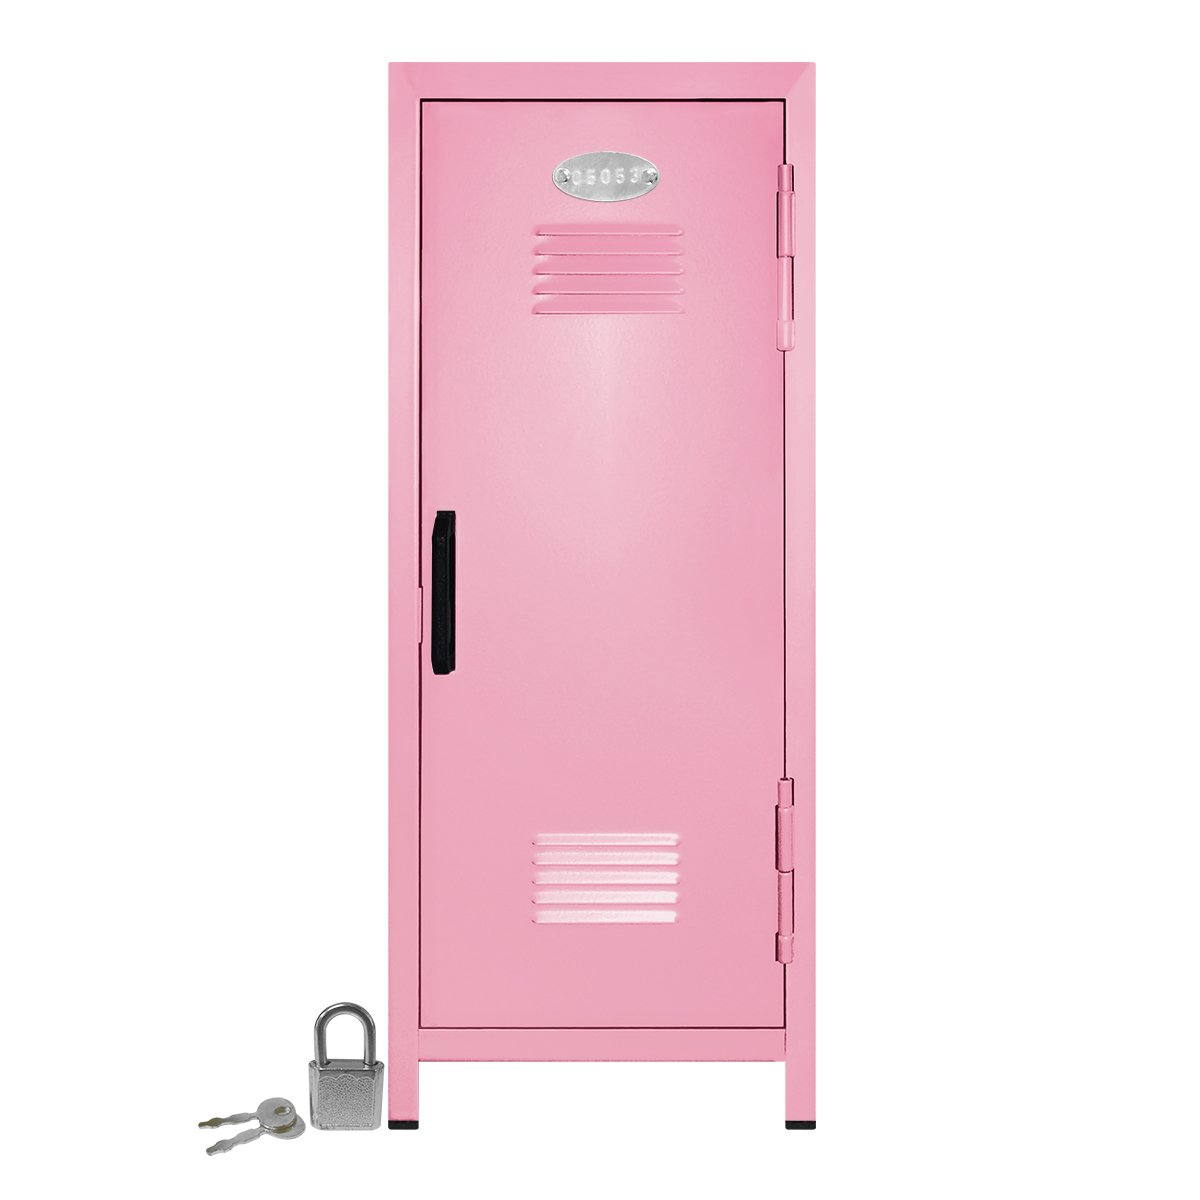 Mini Locker with Lock and Key Light Pink -10.75'' Tall x 4.125'' x 4.125'' by Mini Lockers by Magnetic Impressions